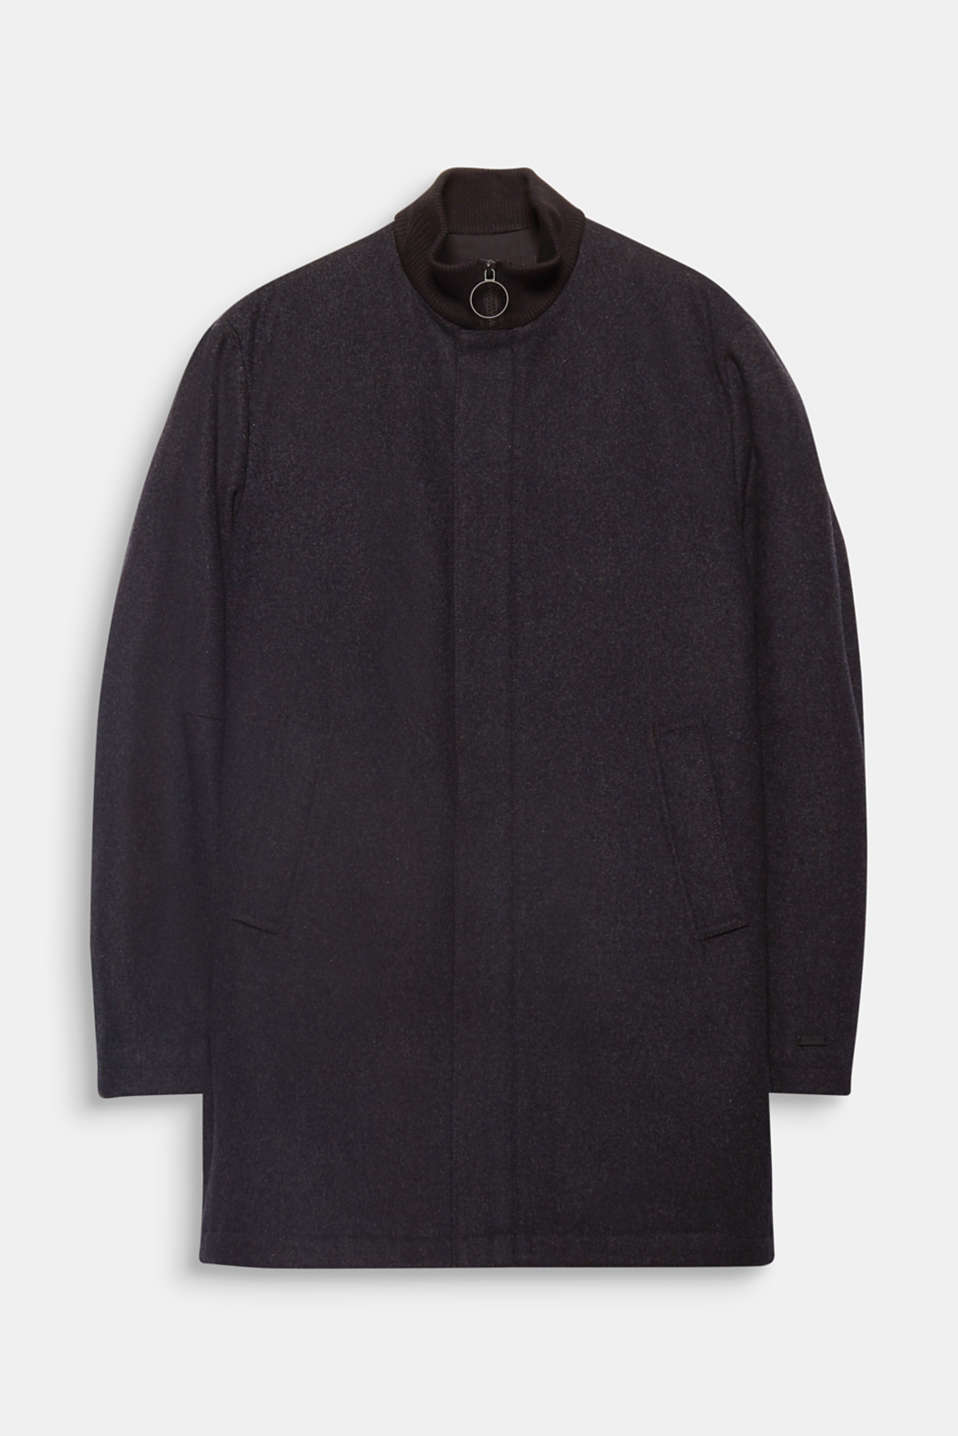 This sleek wool coat will take you stylishly through the colder seasons.